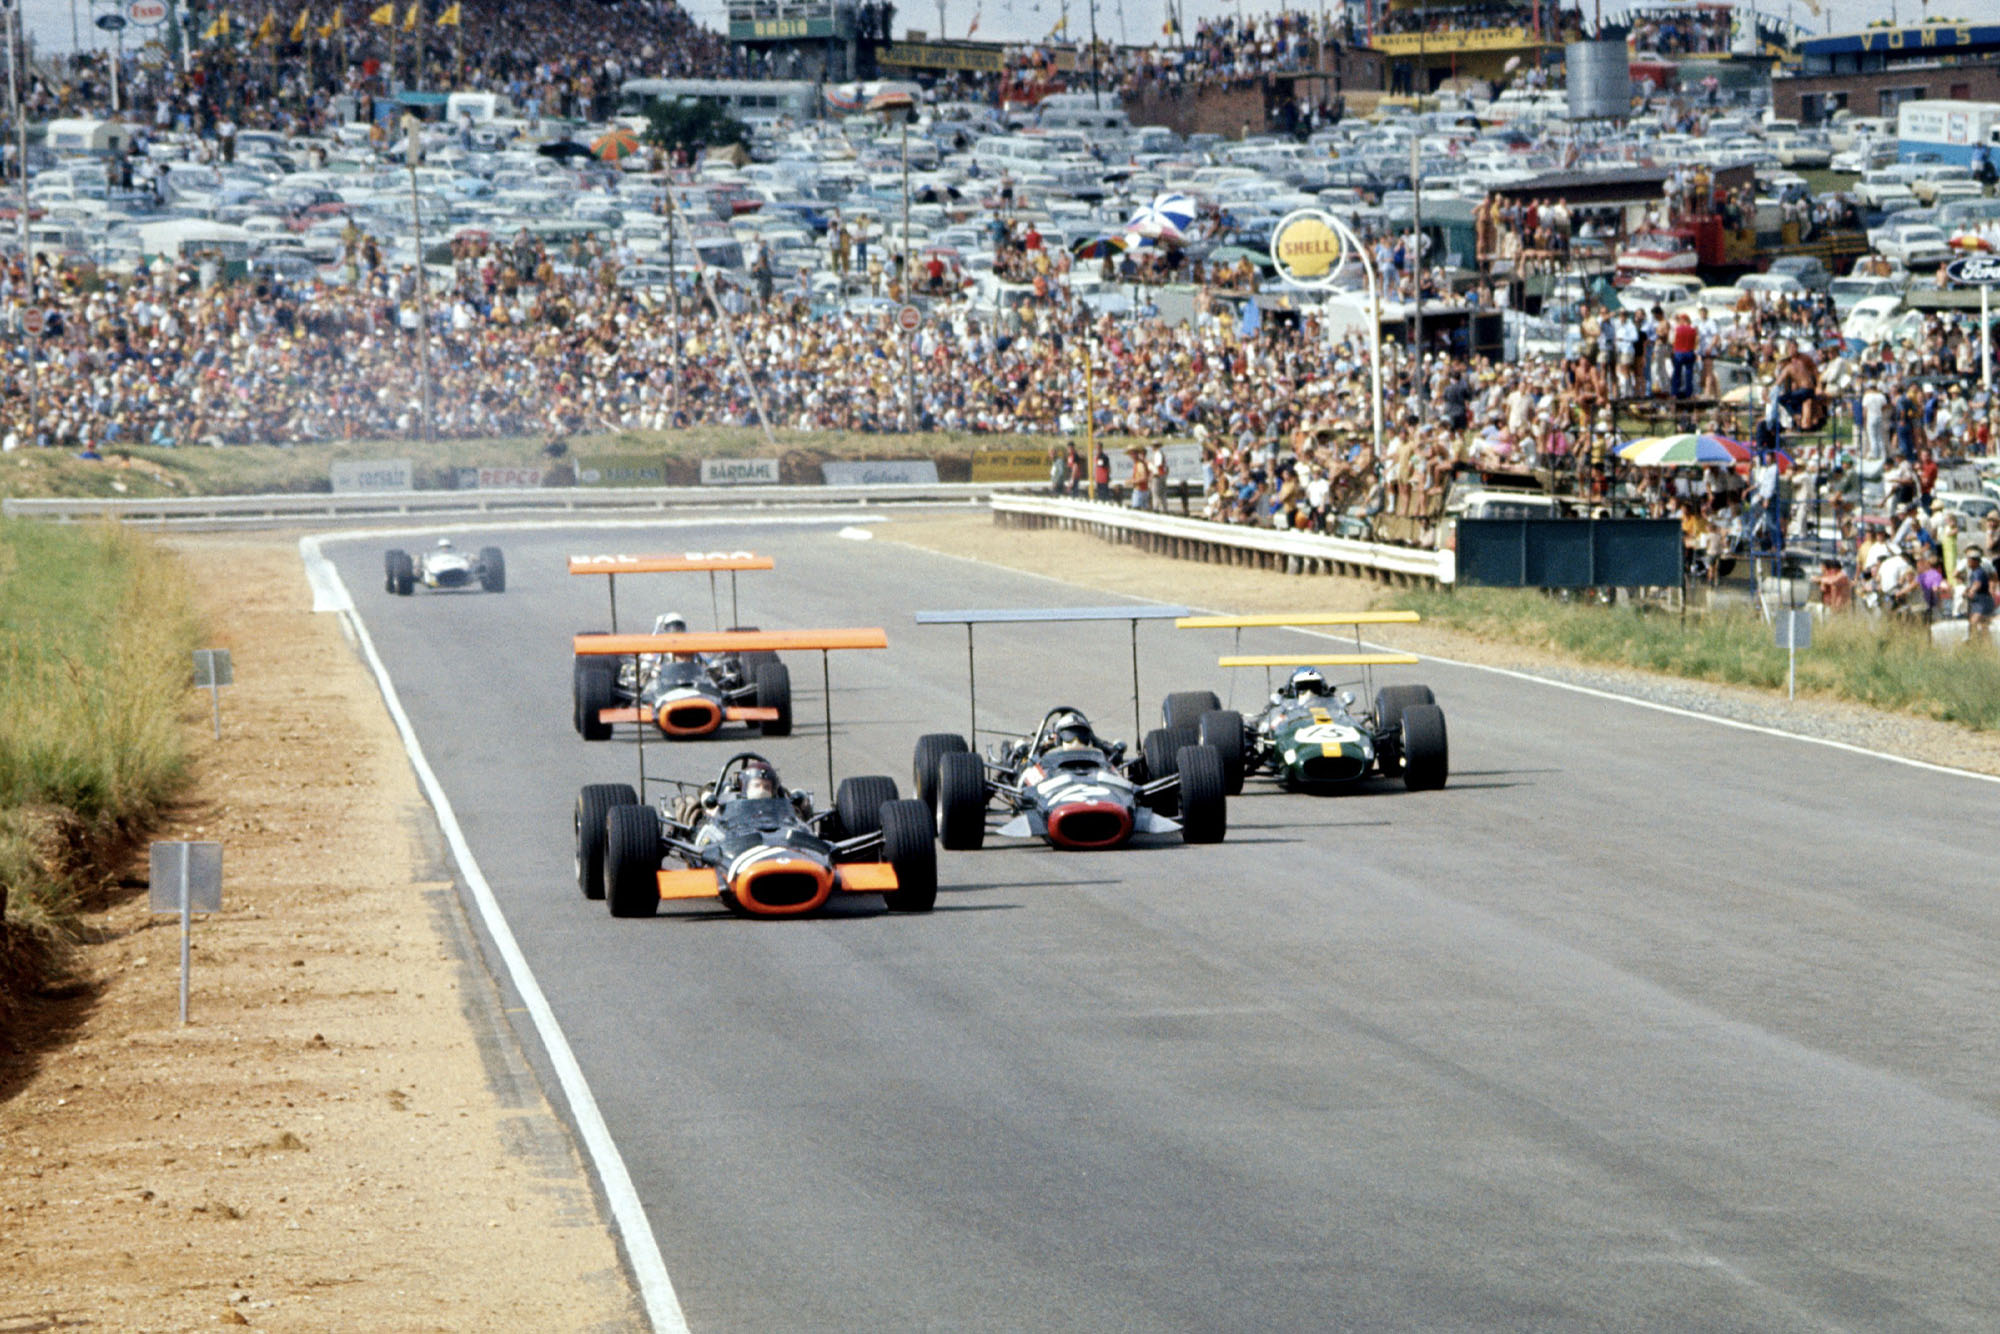 Jackie Oliver (BRM) battles with Pedro Rodriguez (BRM) and Jacky Ickx (Brabham).